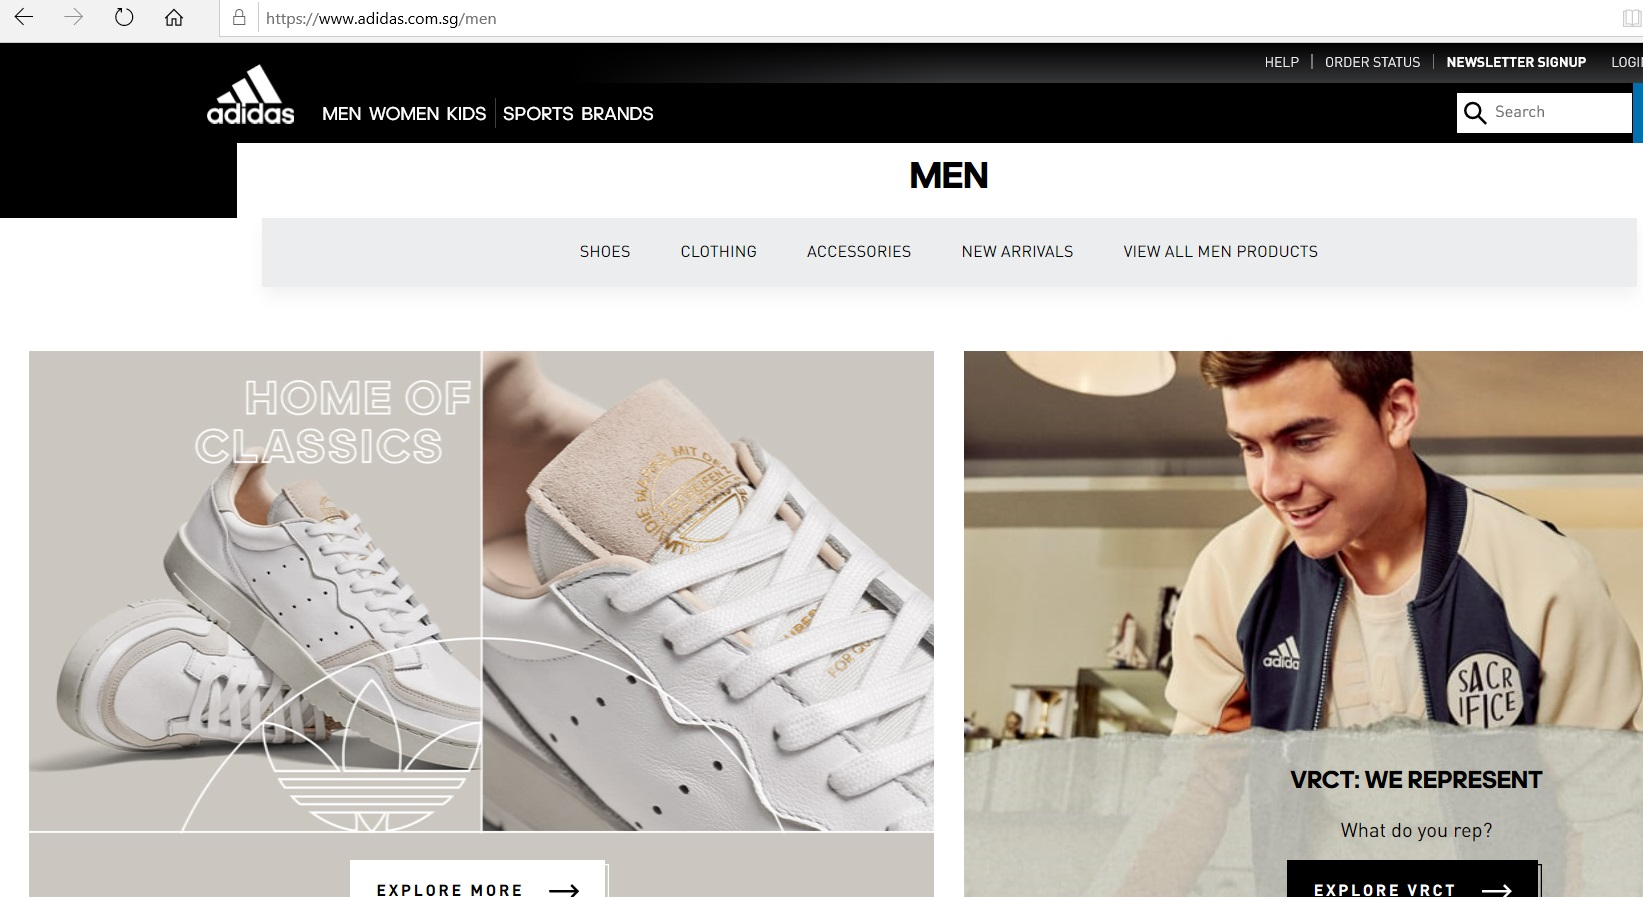 Men s section of Adidas website.